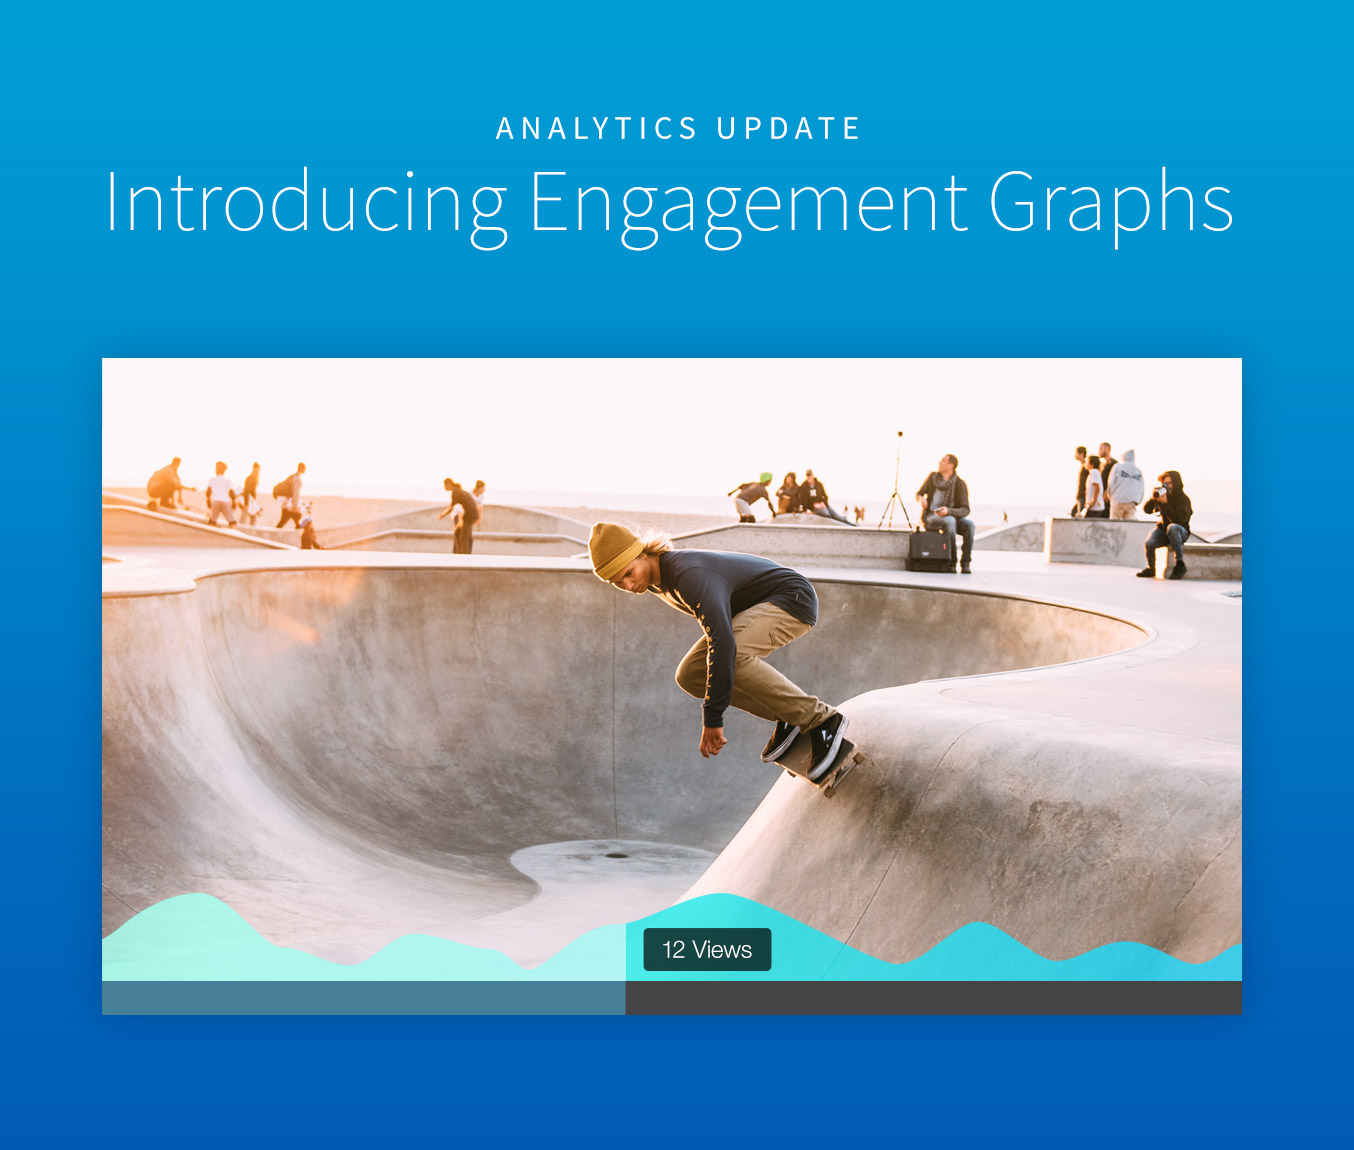 Engagment Graphs